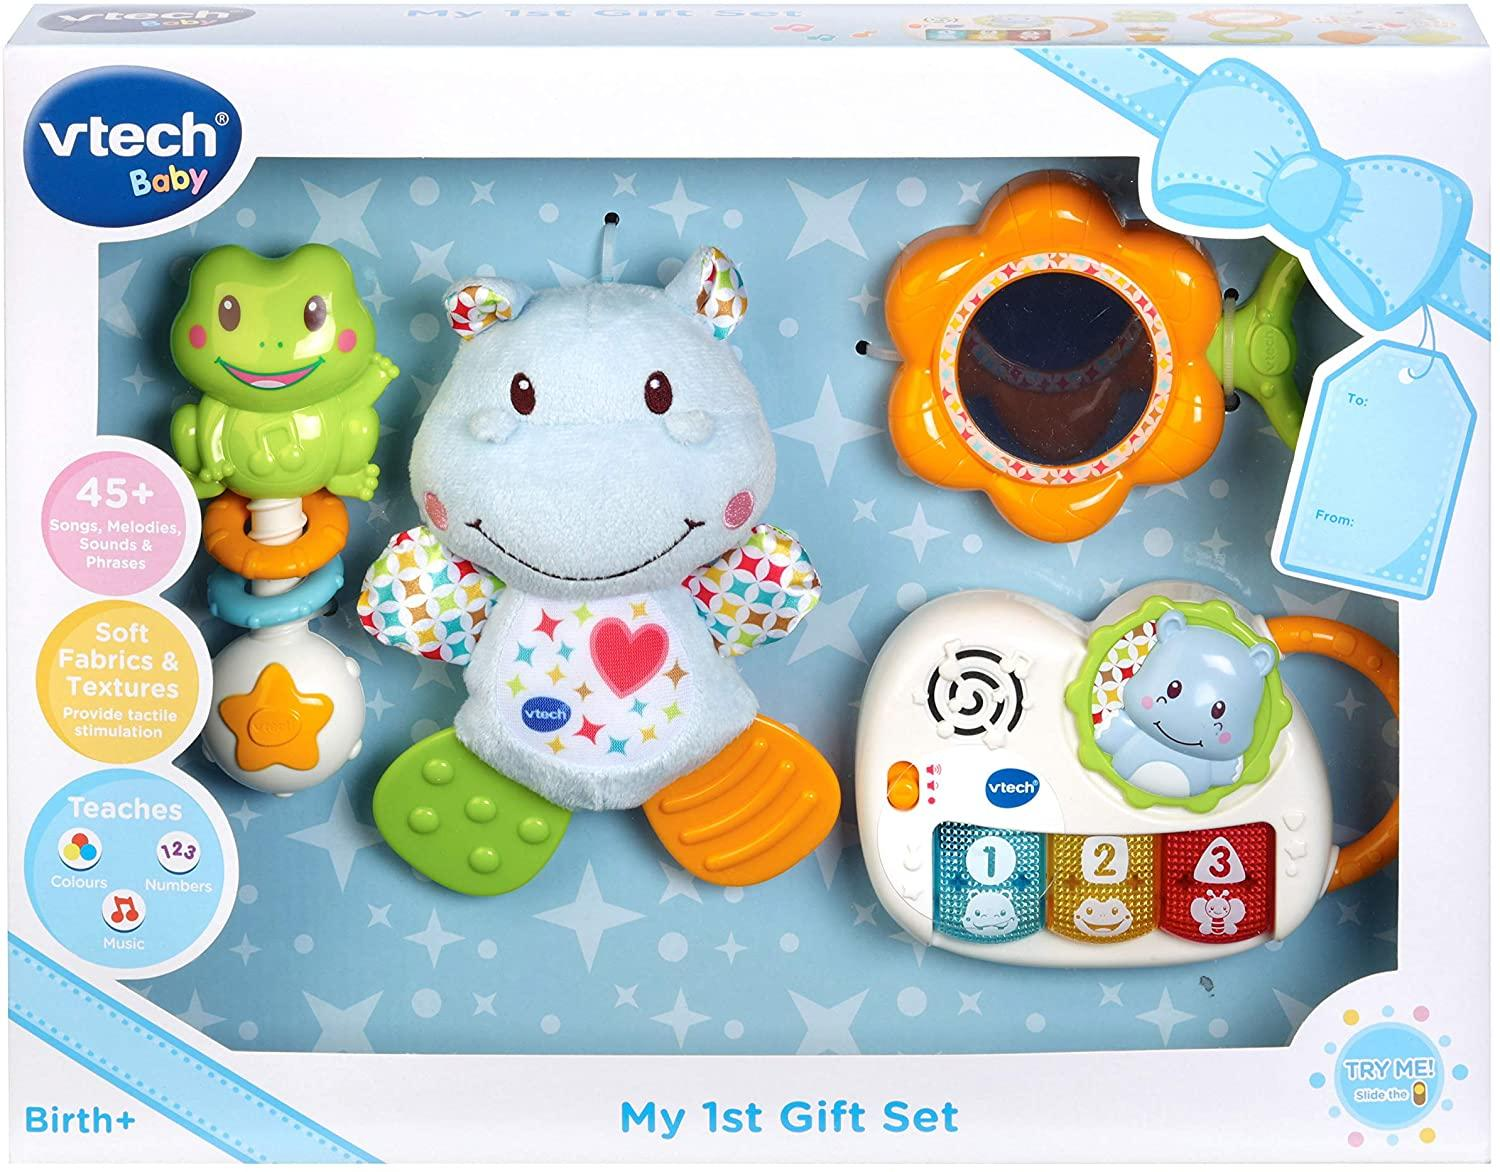 Vtech New Born Gift Set Boy Toymaster Ballina